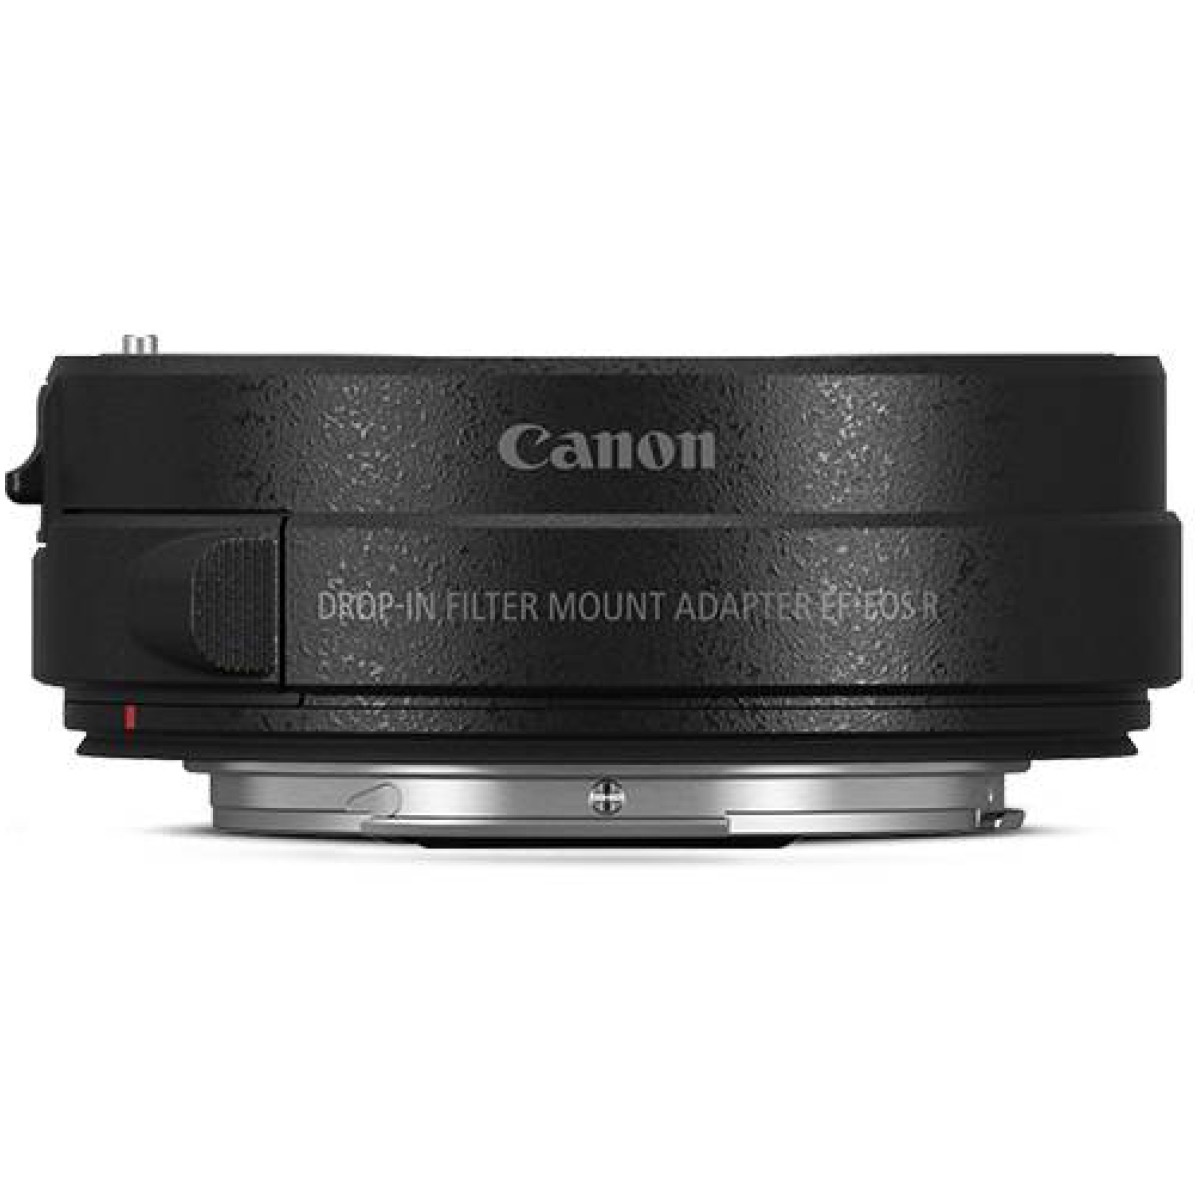 Canon Adapter EF-EOS R für V-ND Drop-In Filter